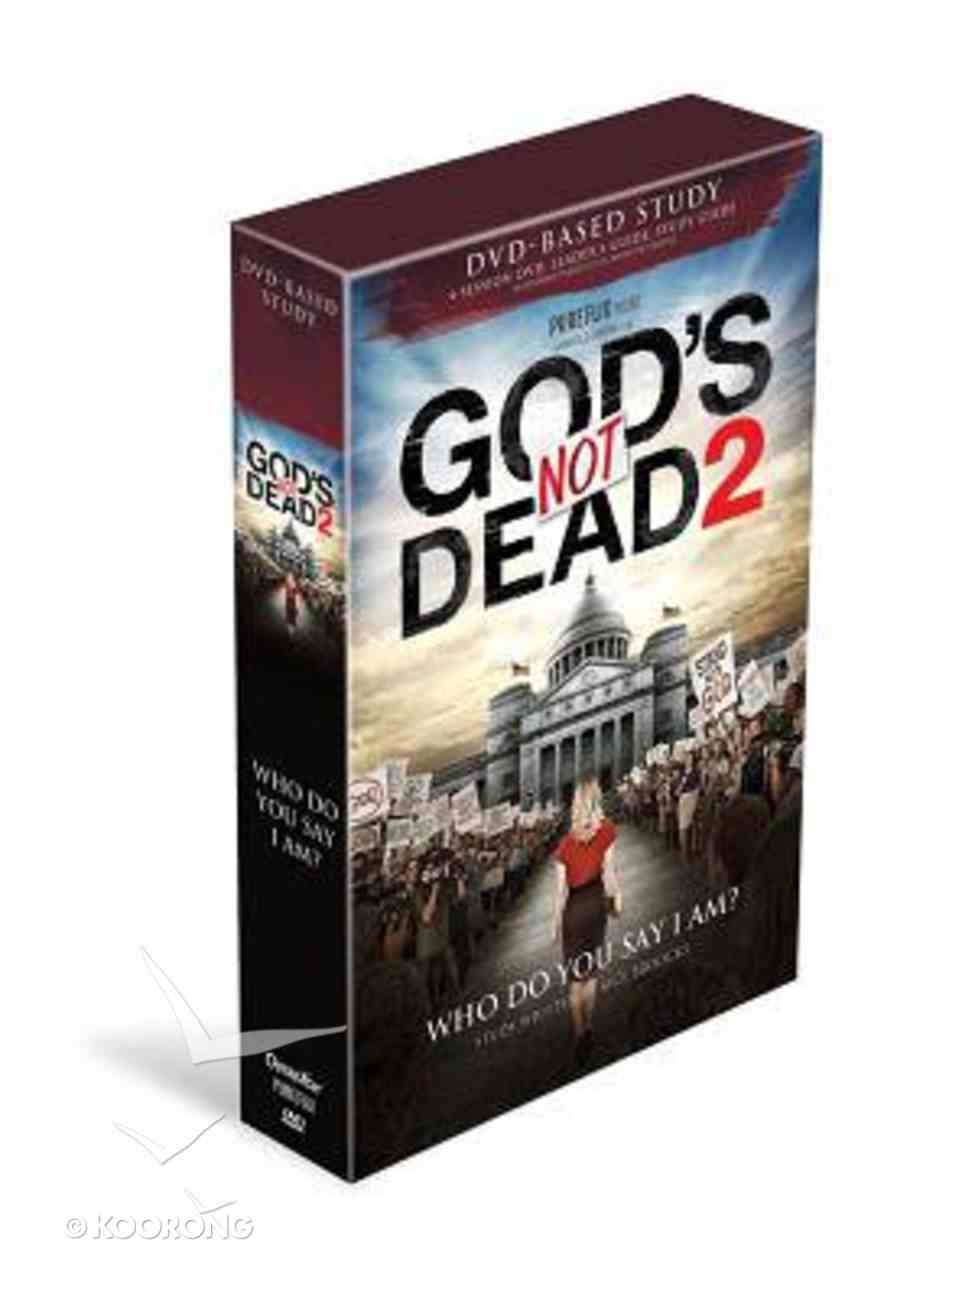 God's Not Dead 2: He's Surely Alive (Dvd-based Study) Pack